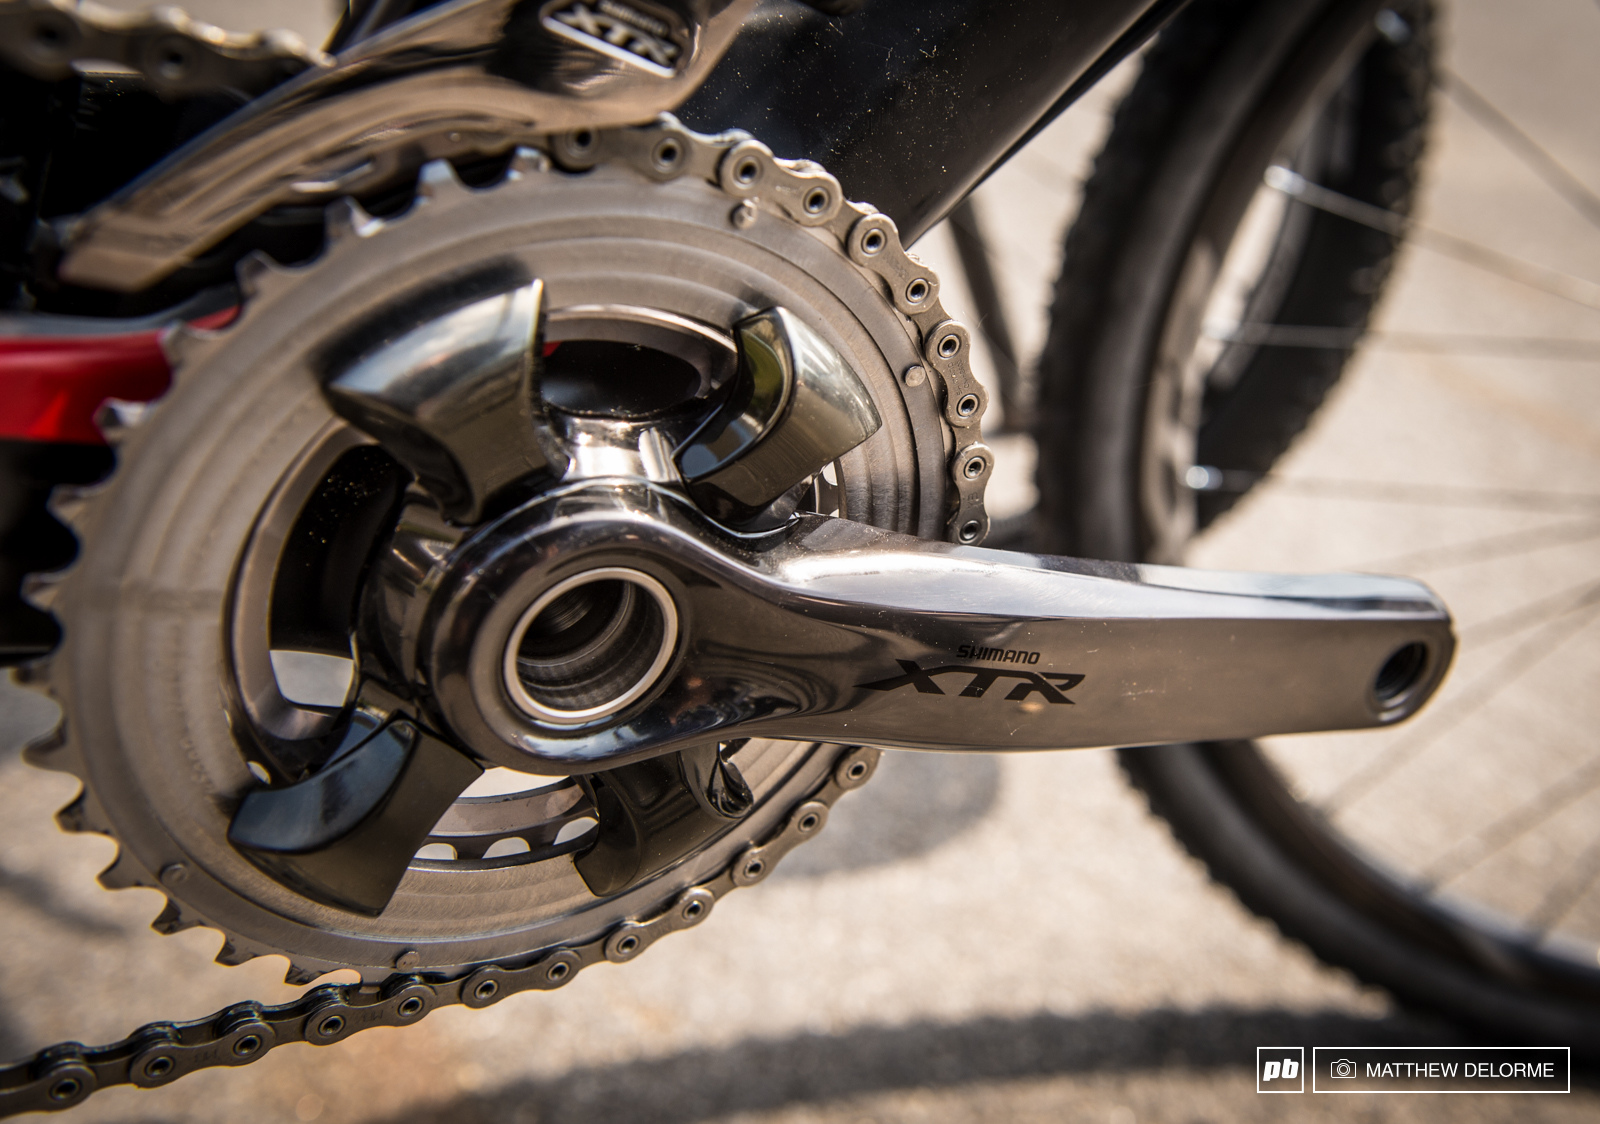 Behold the Shimano XTR 9000. The newly designed crankset allows for 3x, 2x, or 1x11. Shimano opted for an 11 X 40 cassette, stating that 40 is a much shorter shifting distance than 42, and therefore more efficient.